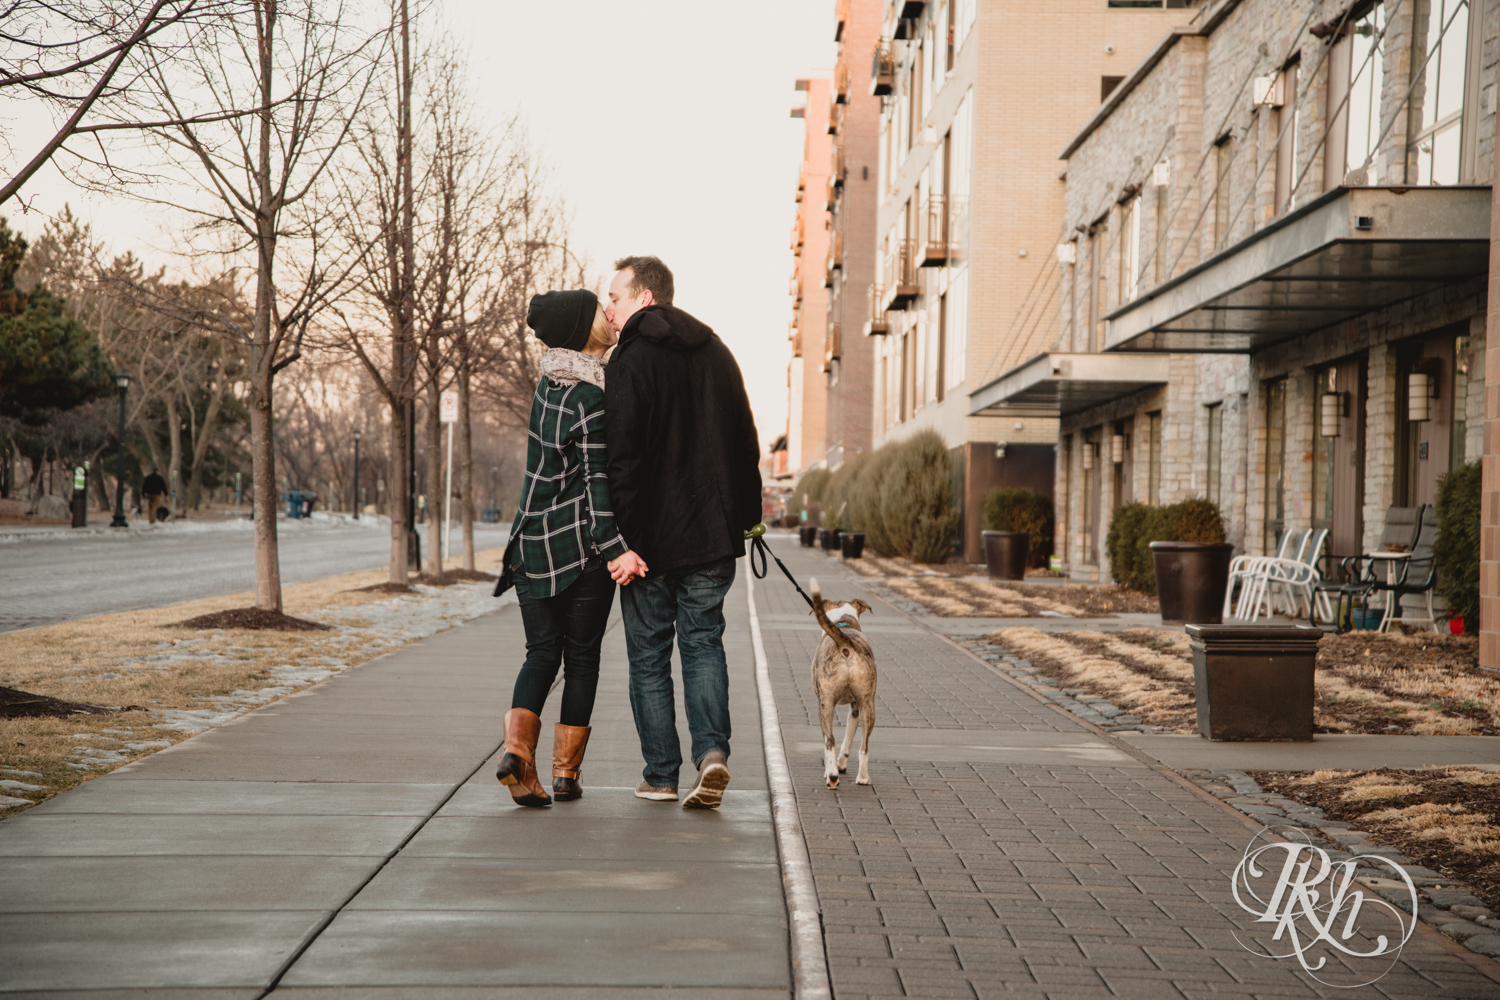 Kate & Kyle - Minnesota Sunrise Engagement Photography - Stone Arch Bridge - RKH Images (13 of 18).jpg